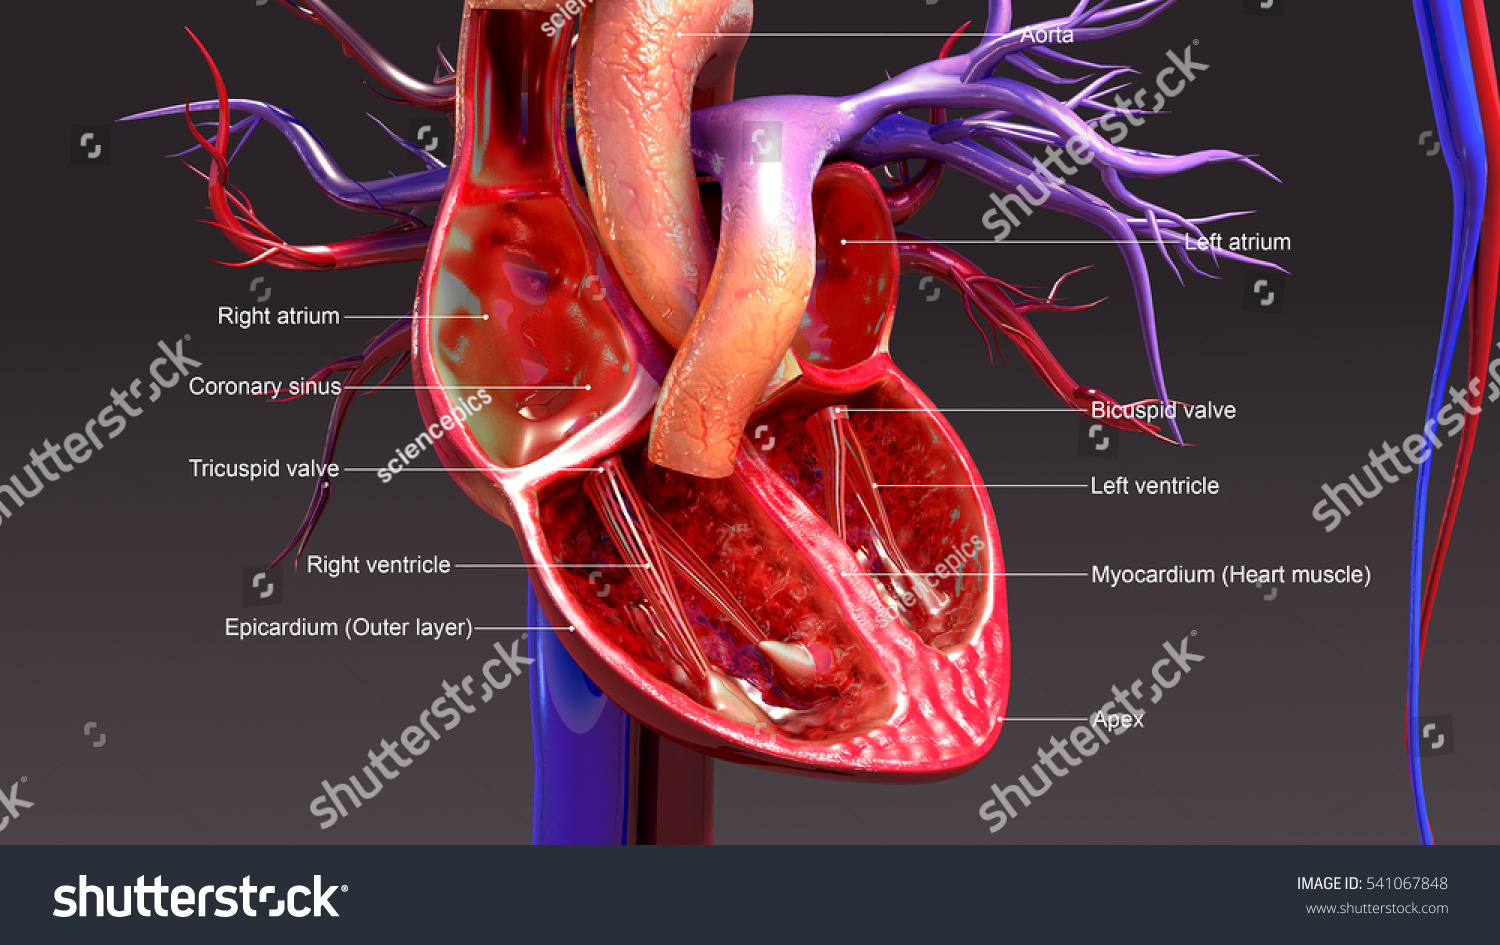 Human Heart Anatomy 3 D Illustration Stock Illustration 541067848 ...